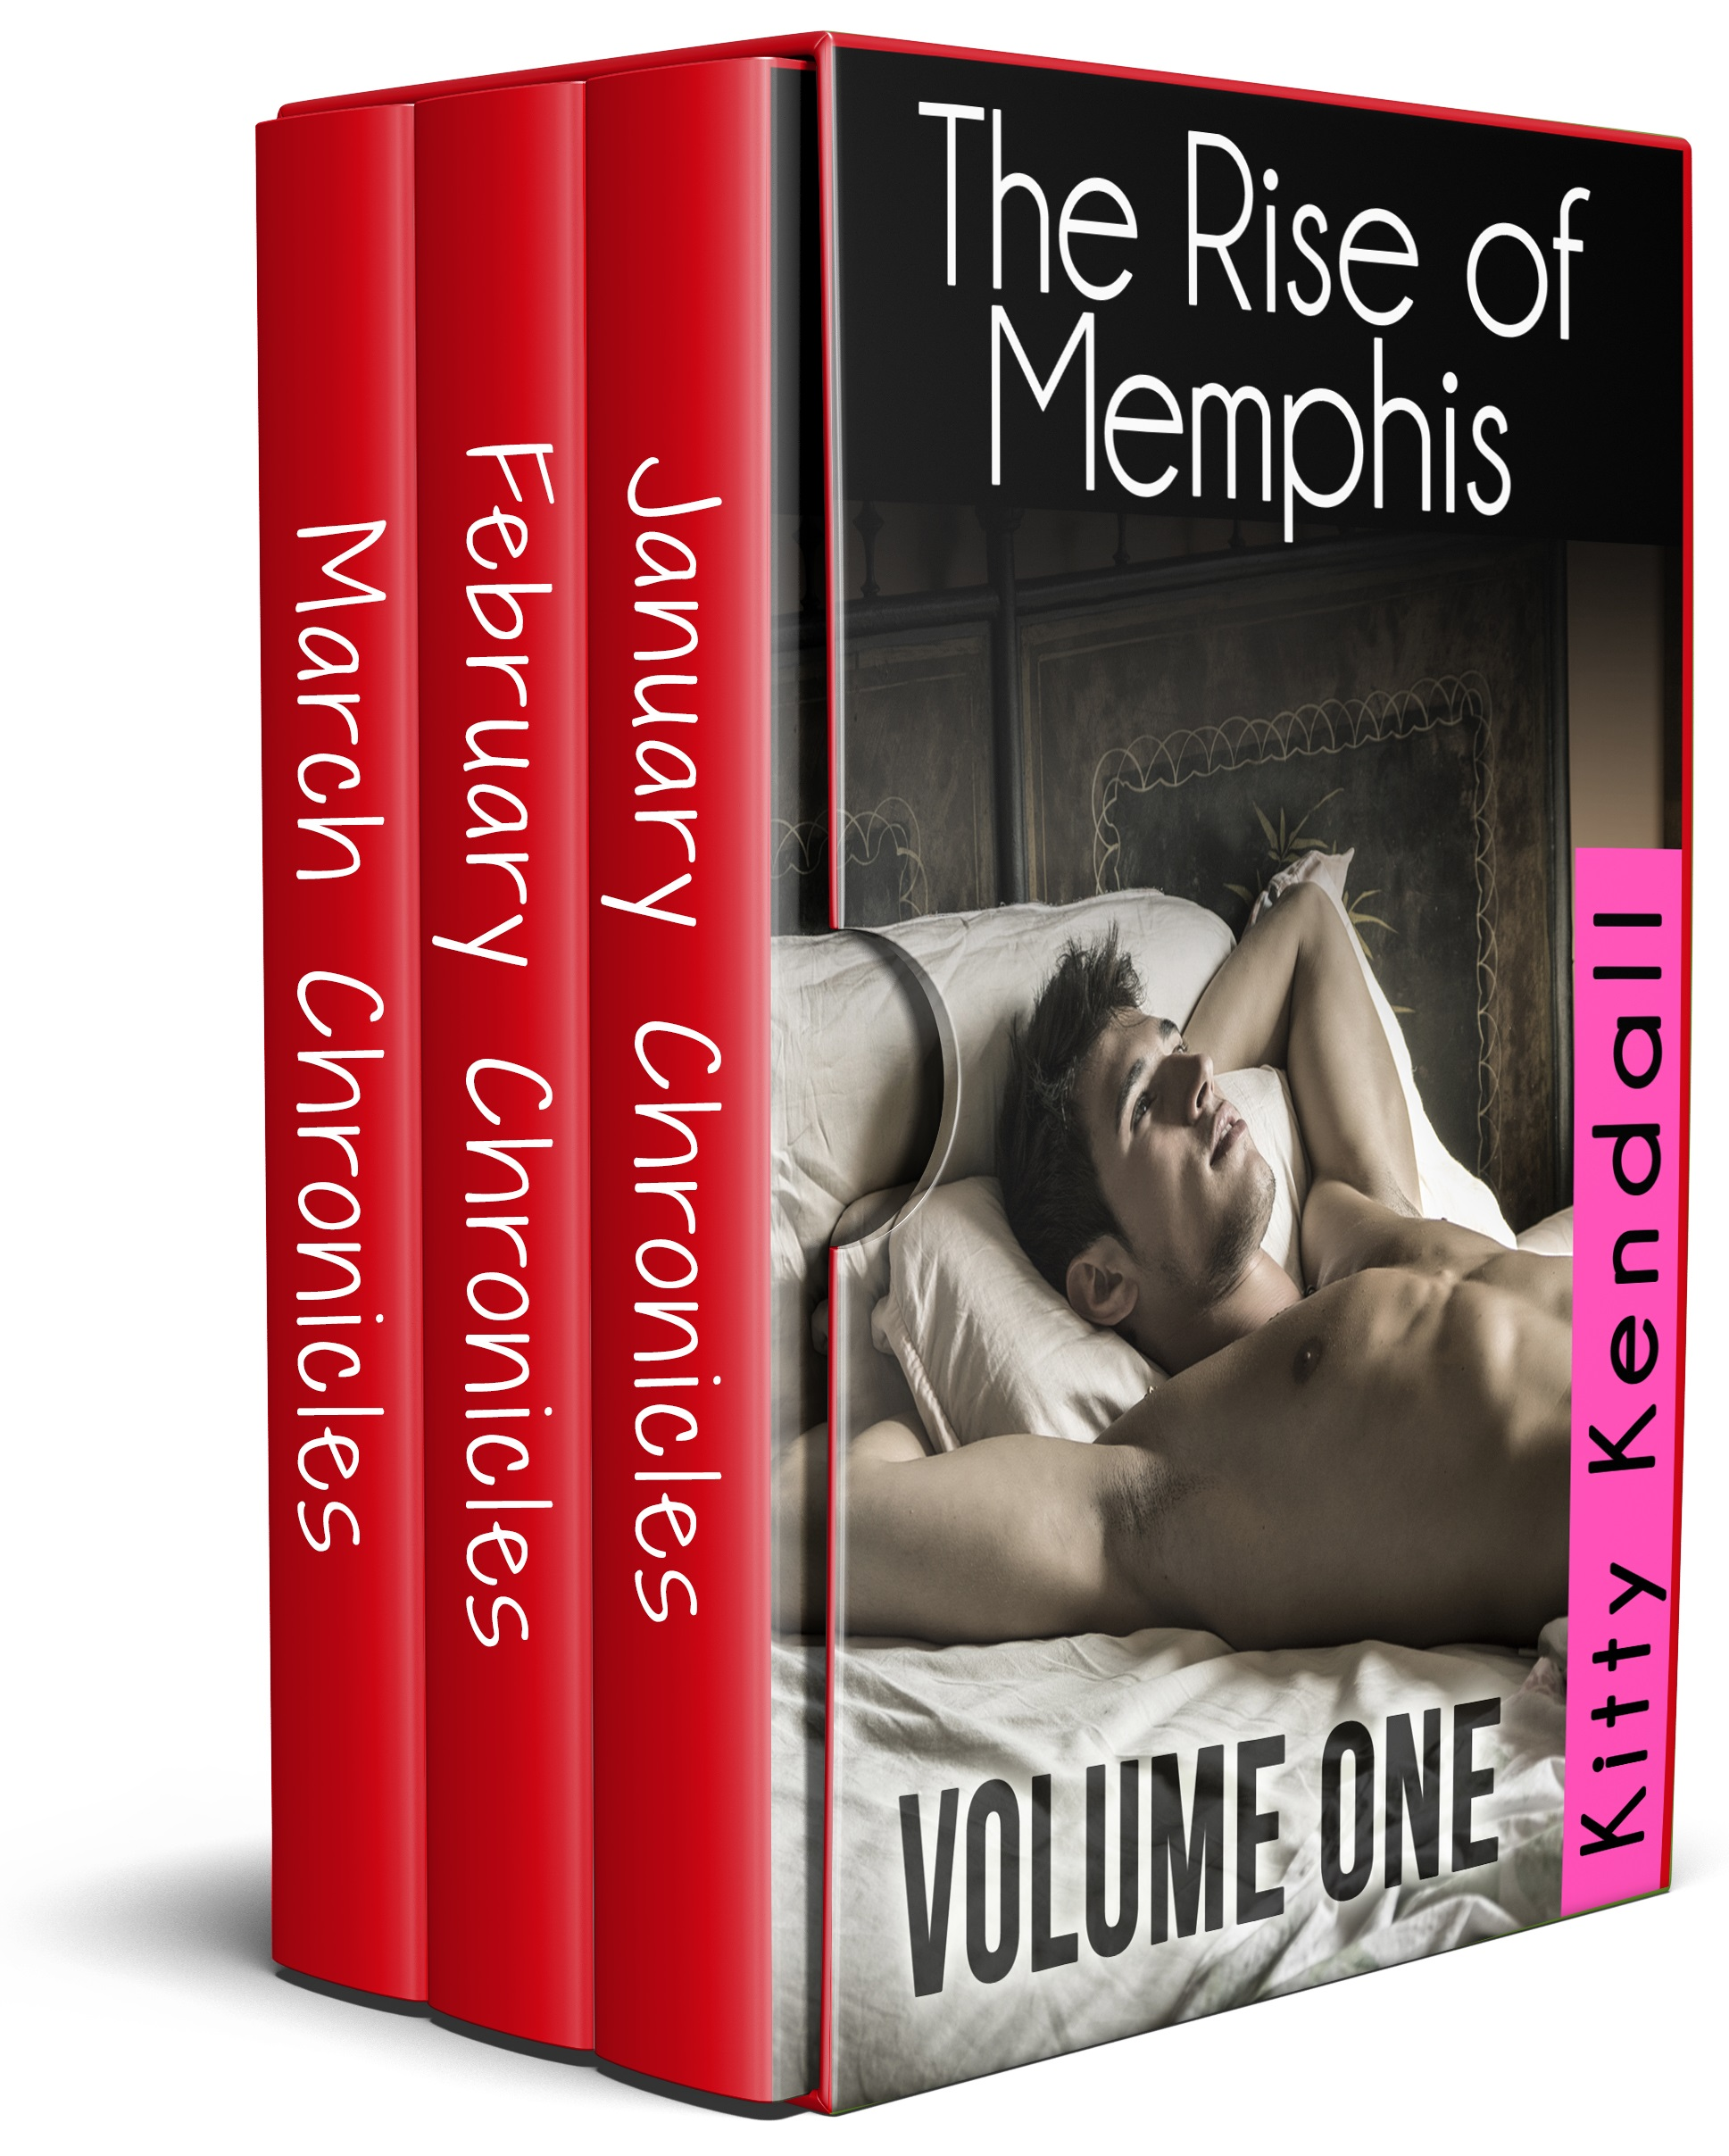 The Rise of Memphis Volume One